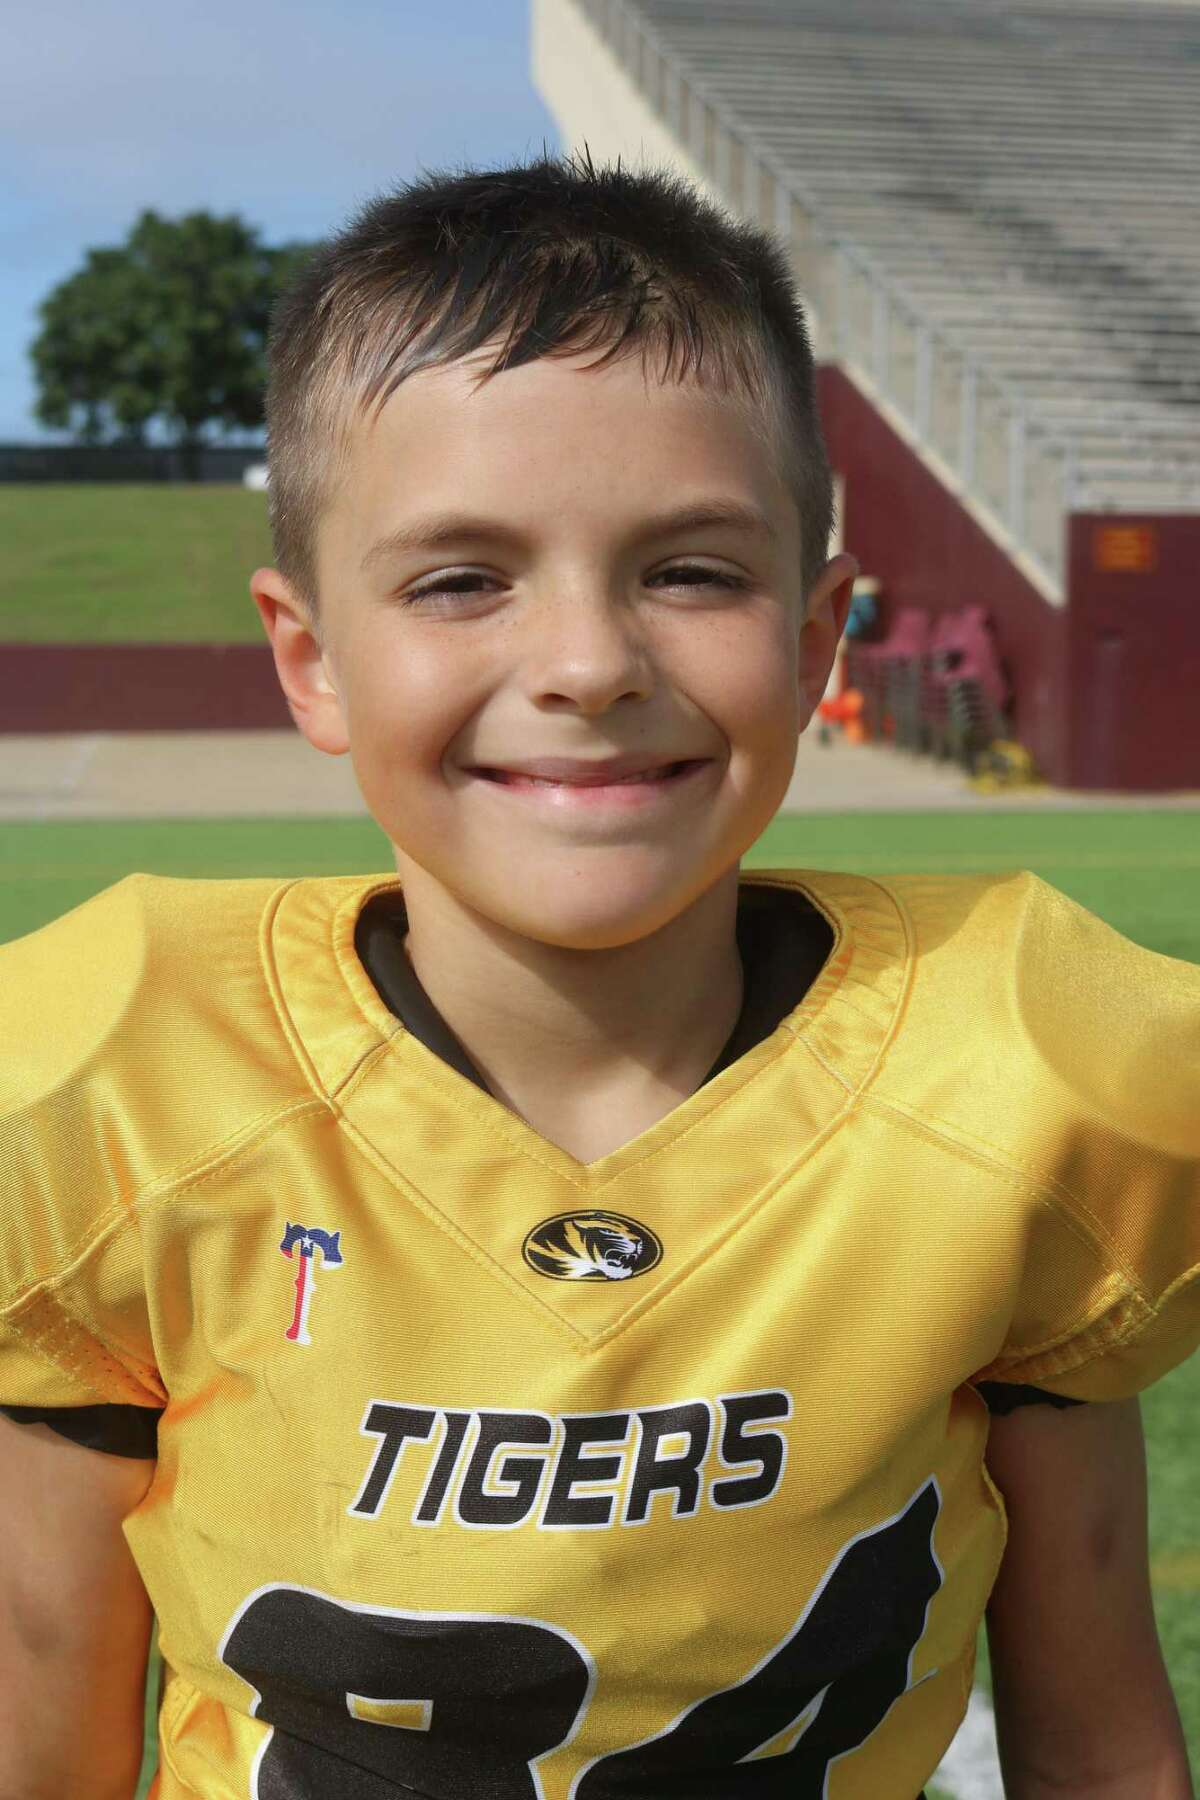 Deer Park Tigers player A.J. Beard was the only kid in America Saturday to receive a bloody nose from a referee's penalty flag. The bizarre moment came as the tteam battled the Sophomore Friendswood Colts.